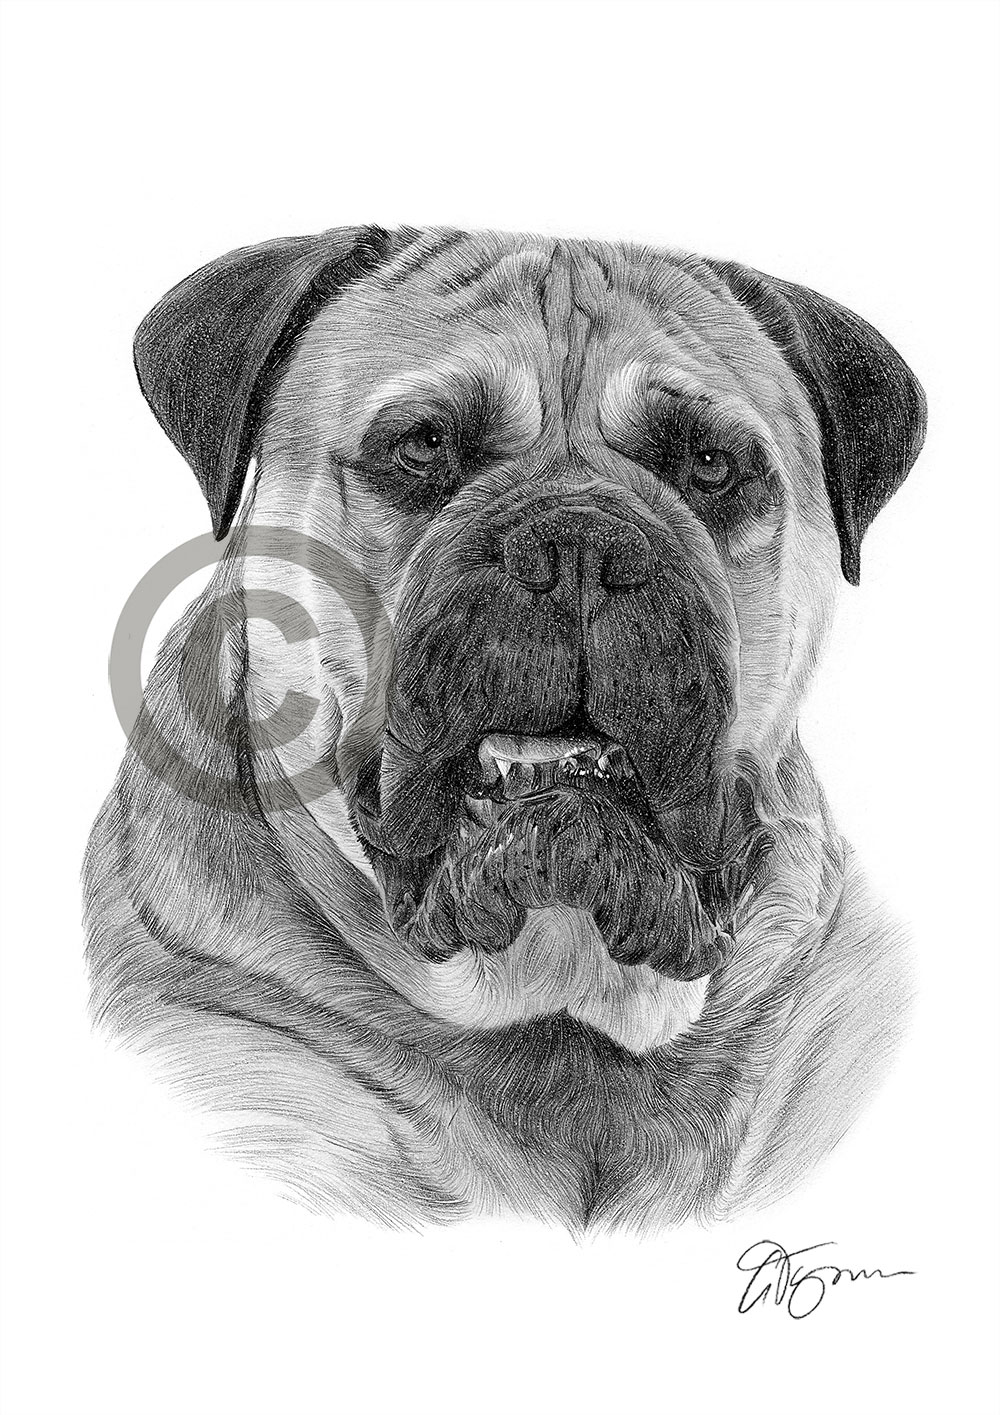 Bullmastiff pencil drawing by artist Gary Tymon